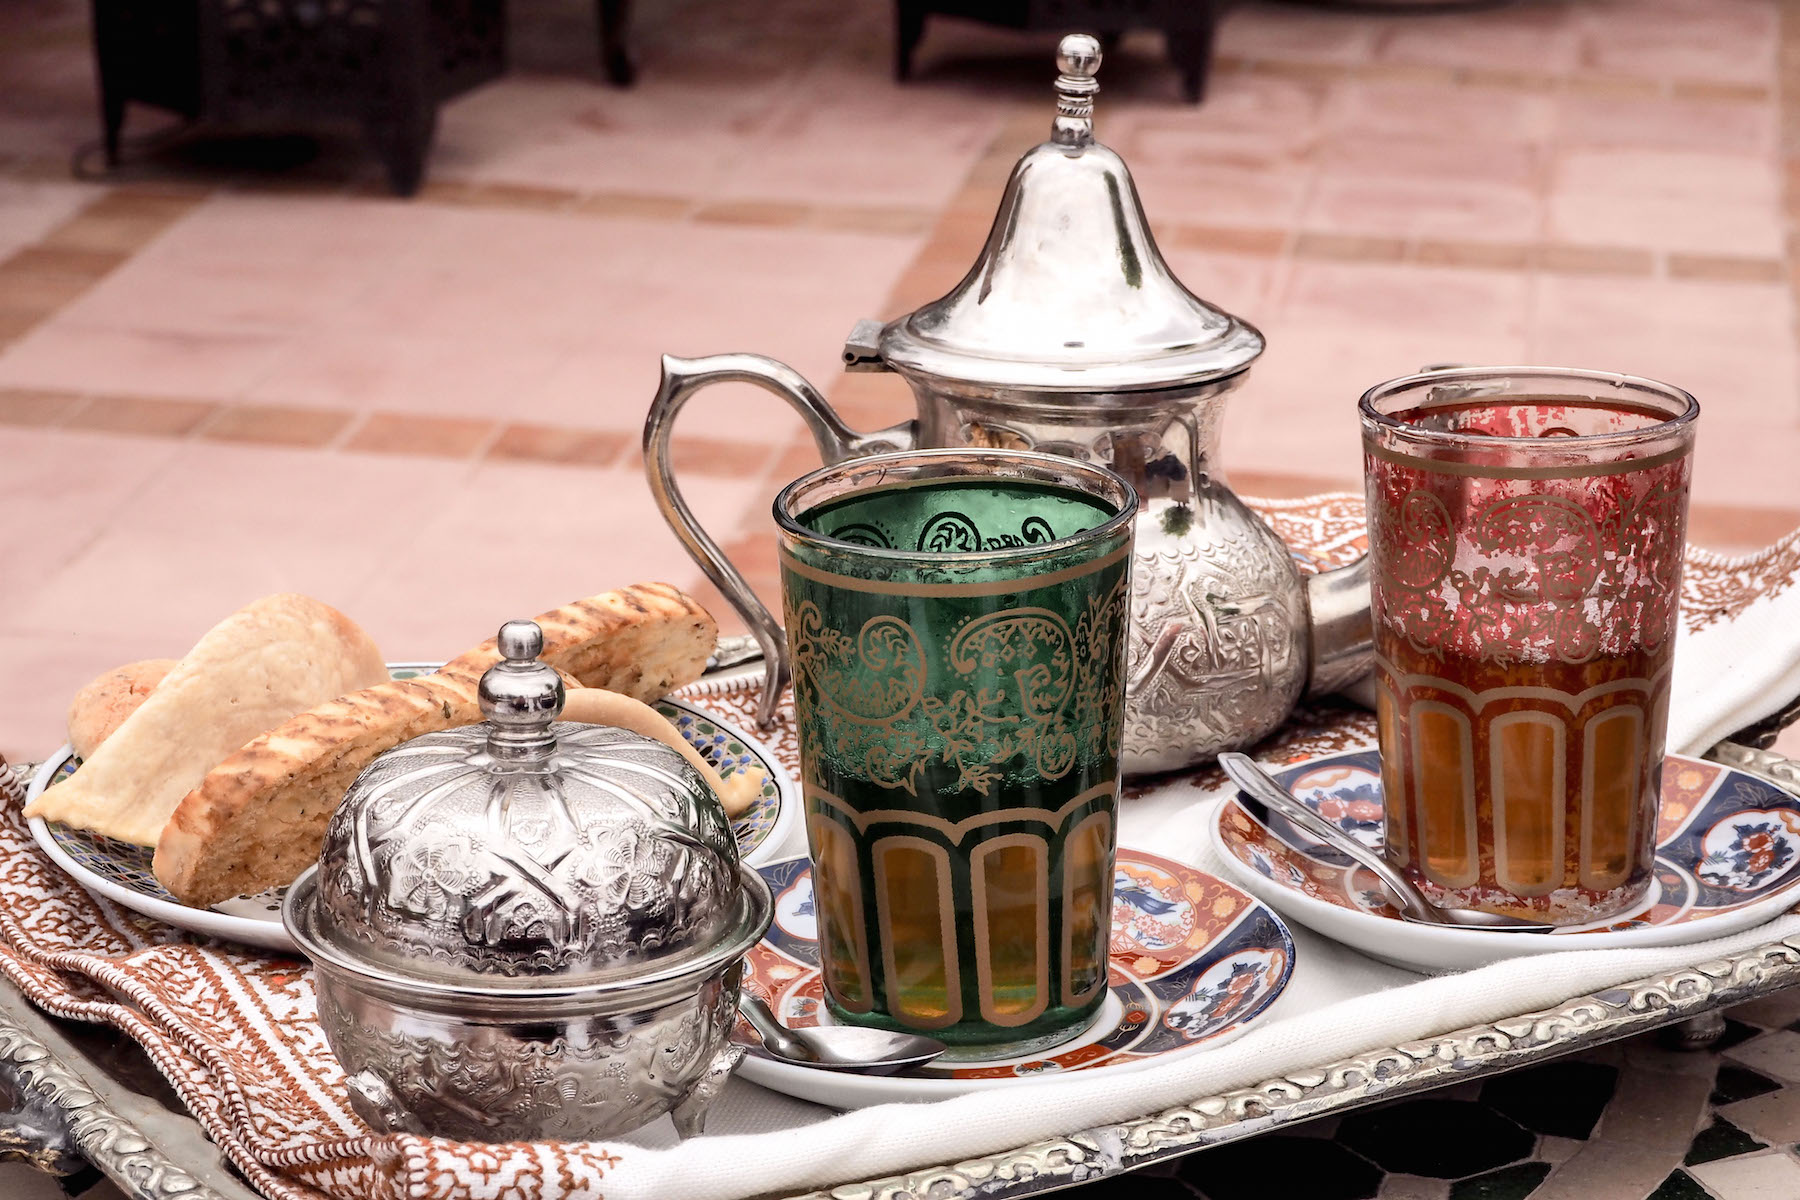 Traditional Moroccan tea and biscuits at the Riad Kniza, Marrakech